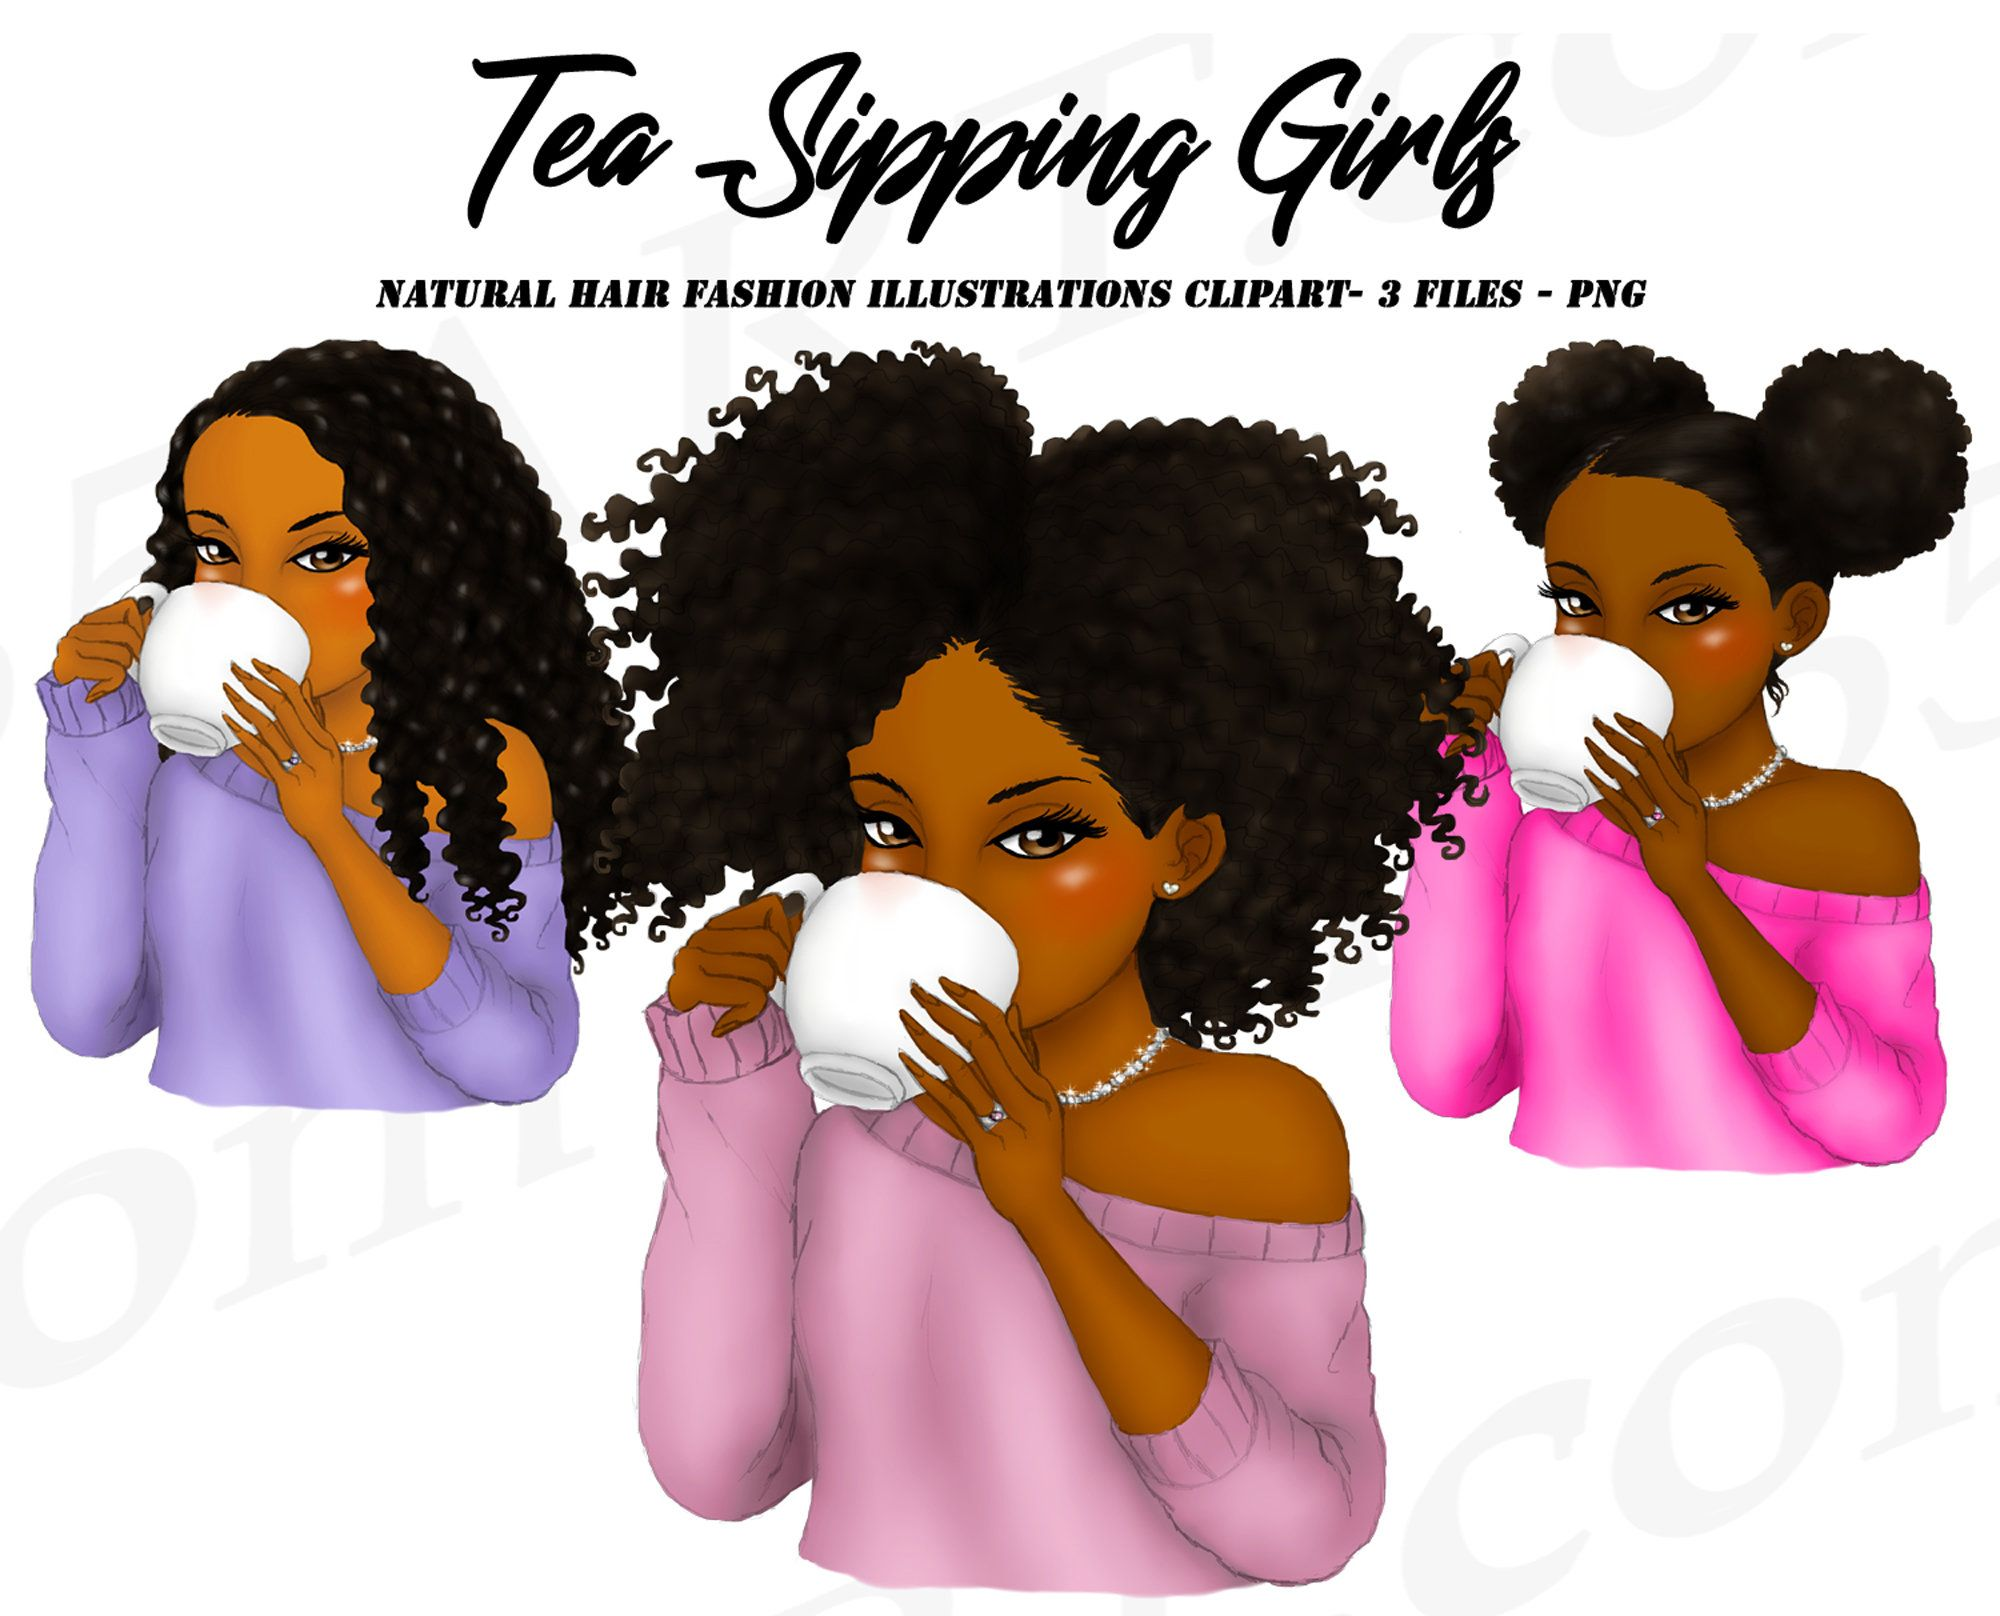 Tea Sipping Girls Clipart Black Girl Black Women Natural Hair Sips Tea Coffee Girl African American Hairstyle Glam Planner Dashboard In 2020 Girl Clipart Natural Hair Styles Girls Natural Hairstyles